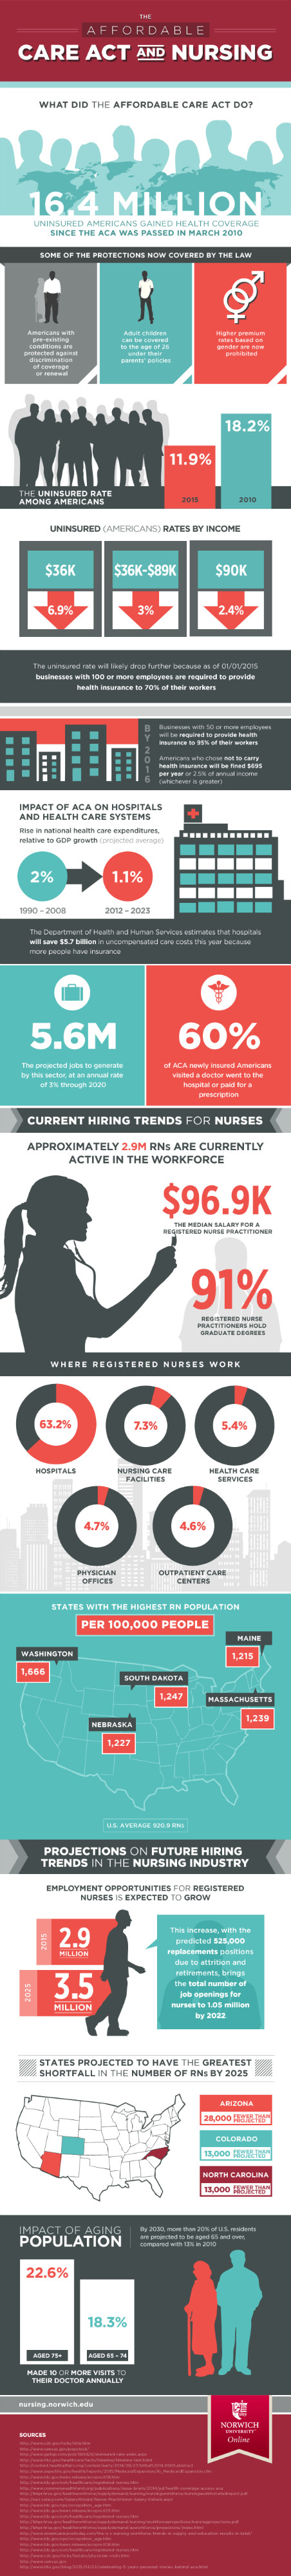 Affordable Care Act and Nursing [Infographic]